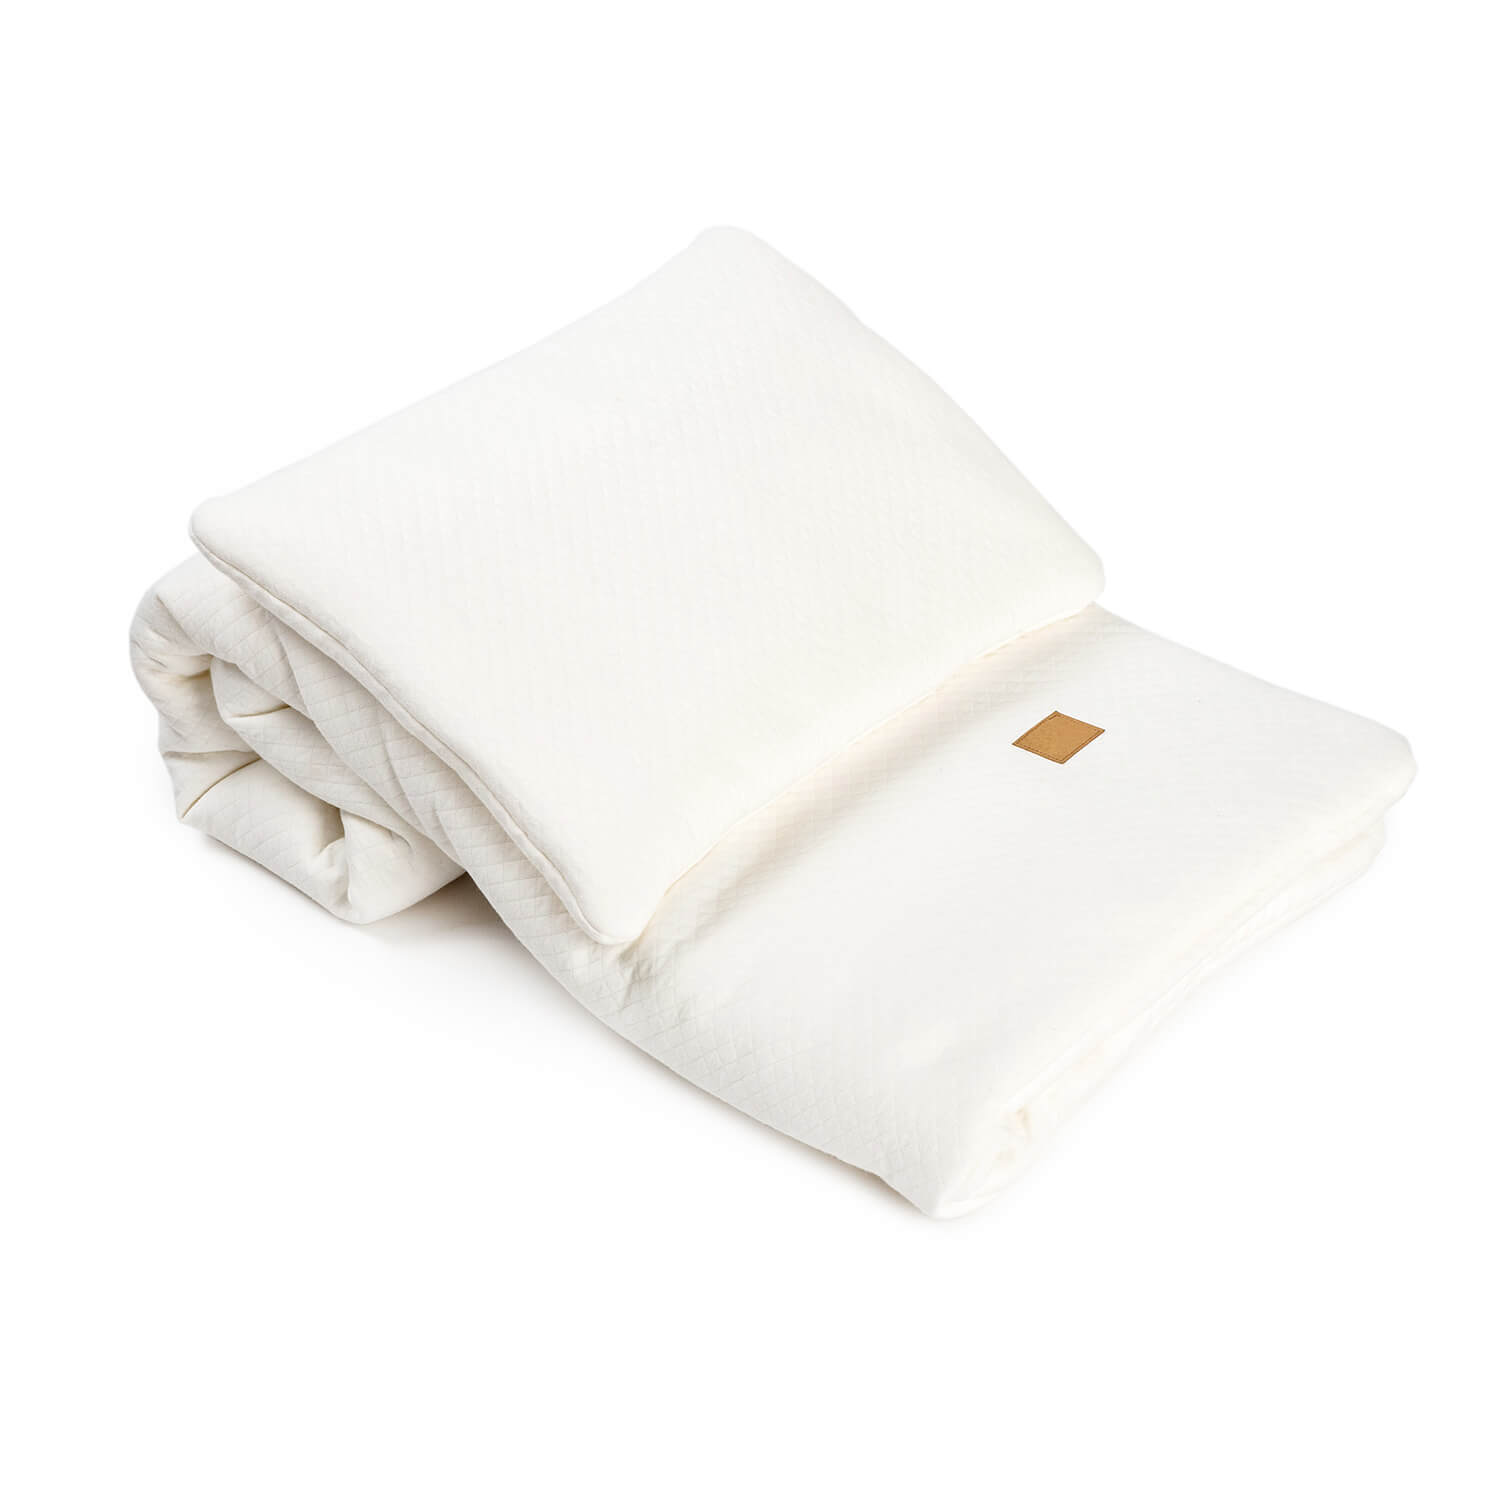 PURE Cover Sheet + Bedding (Quilt and Pillow) White